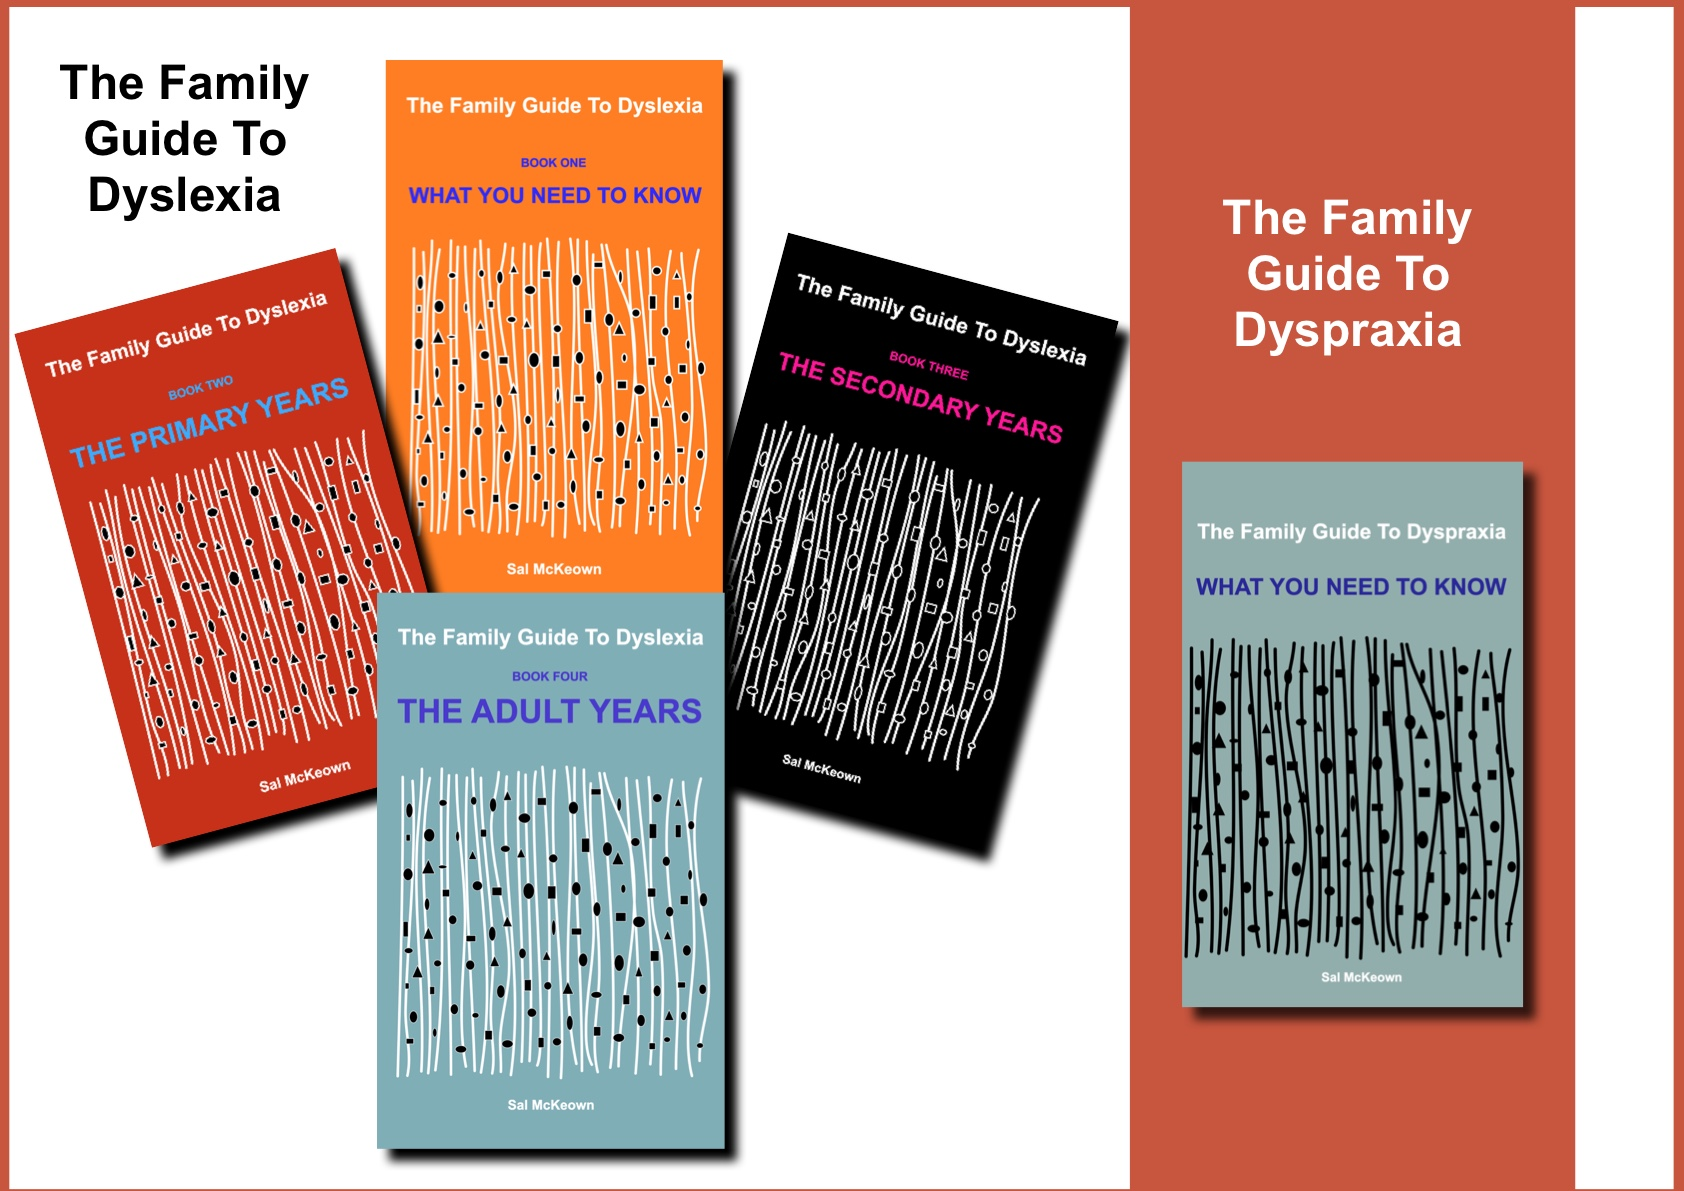 Five book covers: The Family Guide to Dyslexia (book one - what you need to know, book two - the primary years, book three - the secondary years, book four - the adult years), and the Family Guide to Dyspraxia (one volume: what you need to know)